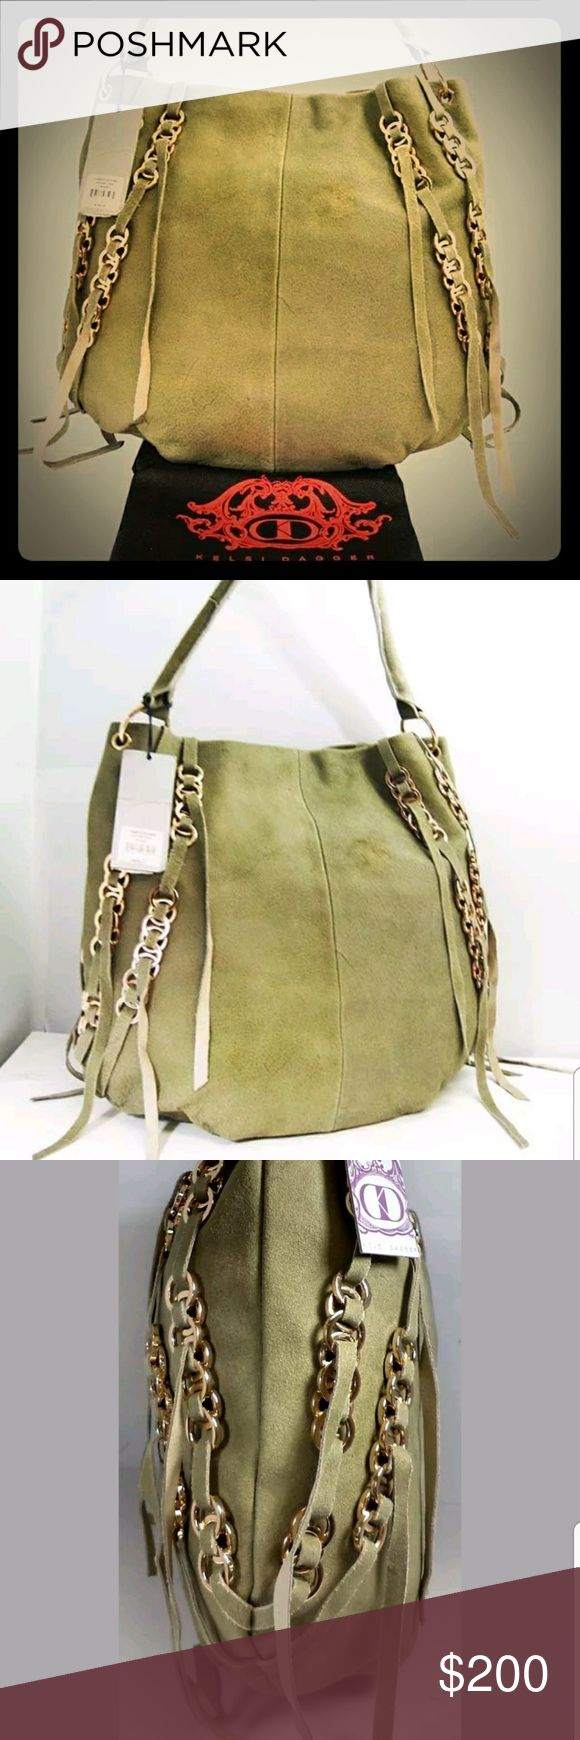 """KELSI DAGGER CAMERON Sage Suede Hobo Shoulder Bag KELSI DAGGER CAMERON Sage Suede Hobo Shoulder Bag  100%Authentic KELSI DAGGER CAMERON Sage Suede Hobo Shoulder Bag  MSRP$288.00 + TAX  BRAND:KELSI DAGGER  COLOR:SAGE  DIMENSIONS:16"""" L x 14"""" H x 3"""" W  SINGLESHOULDERSTRAP:7 DROP  EXTERIOR:  GENUINE SAGE SUEDE  SNAP TOP CLOSURE  GOLD TONE HARDWARE  RING STYLE STRAPS  GOLD-TONE INTERLOCKING CIRCLE HARDWARE WITH FREE-FLOWING FRINGE  This Bag was on display and was also handled by…"""